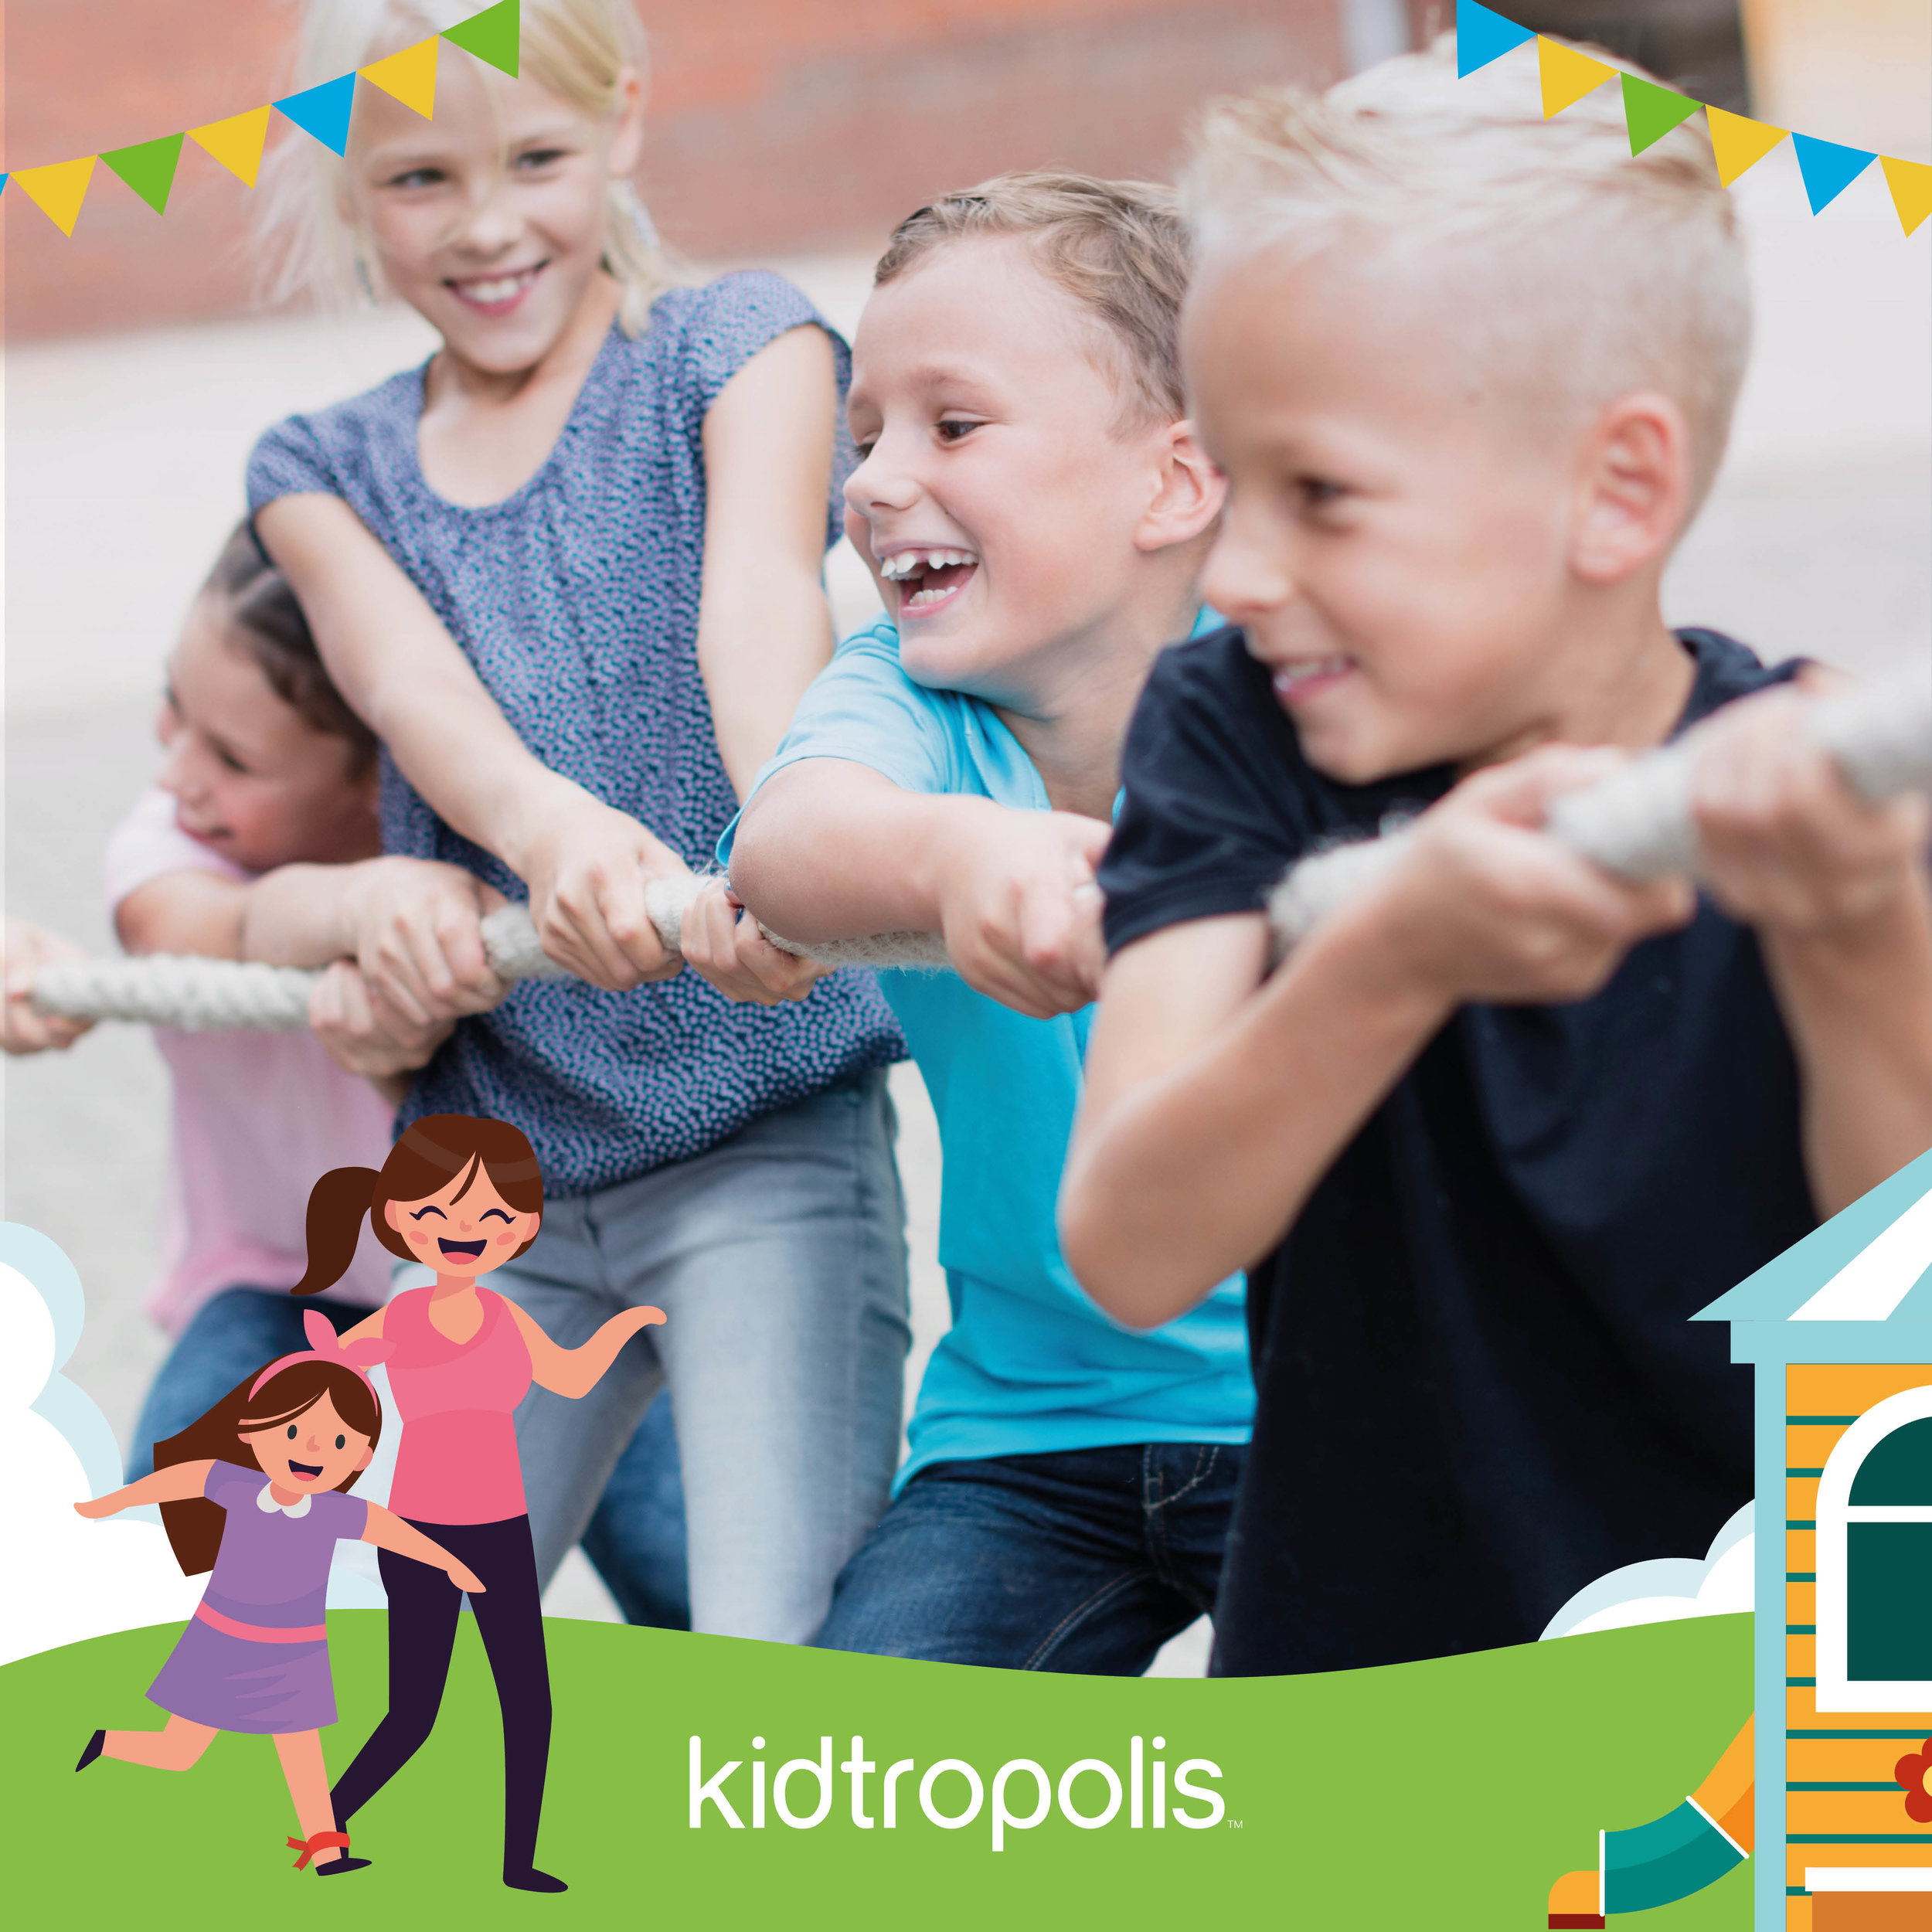 Kidtropolis_1000x1000px_Carousel Ad_Birthday Party2.jpg